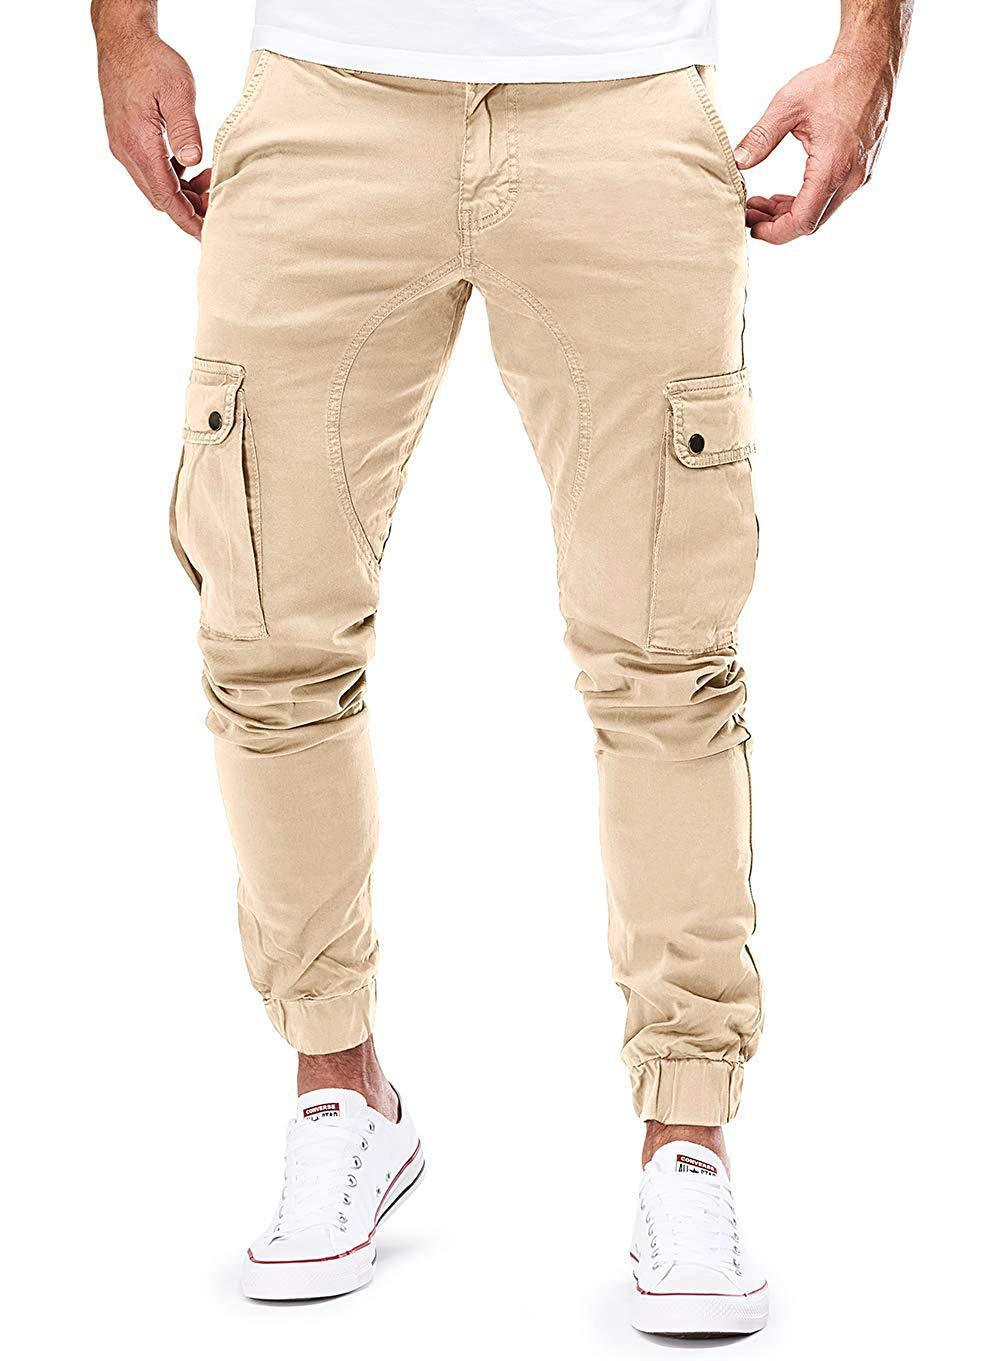 New Style Hot Selling Men Tatting Casual Pants Workwear Pocket Trousers Bags Beam Leg Trousers